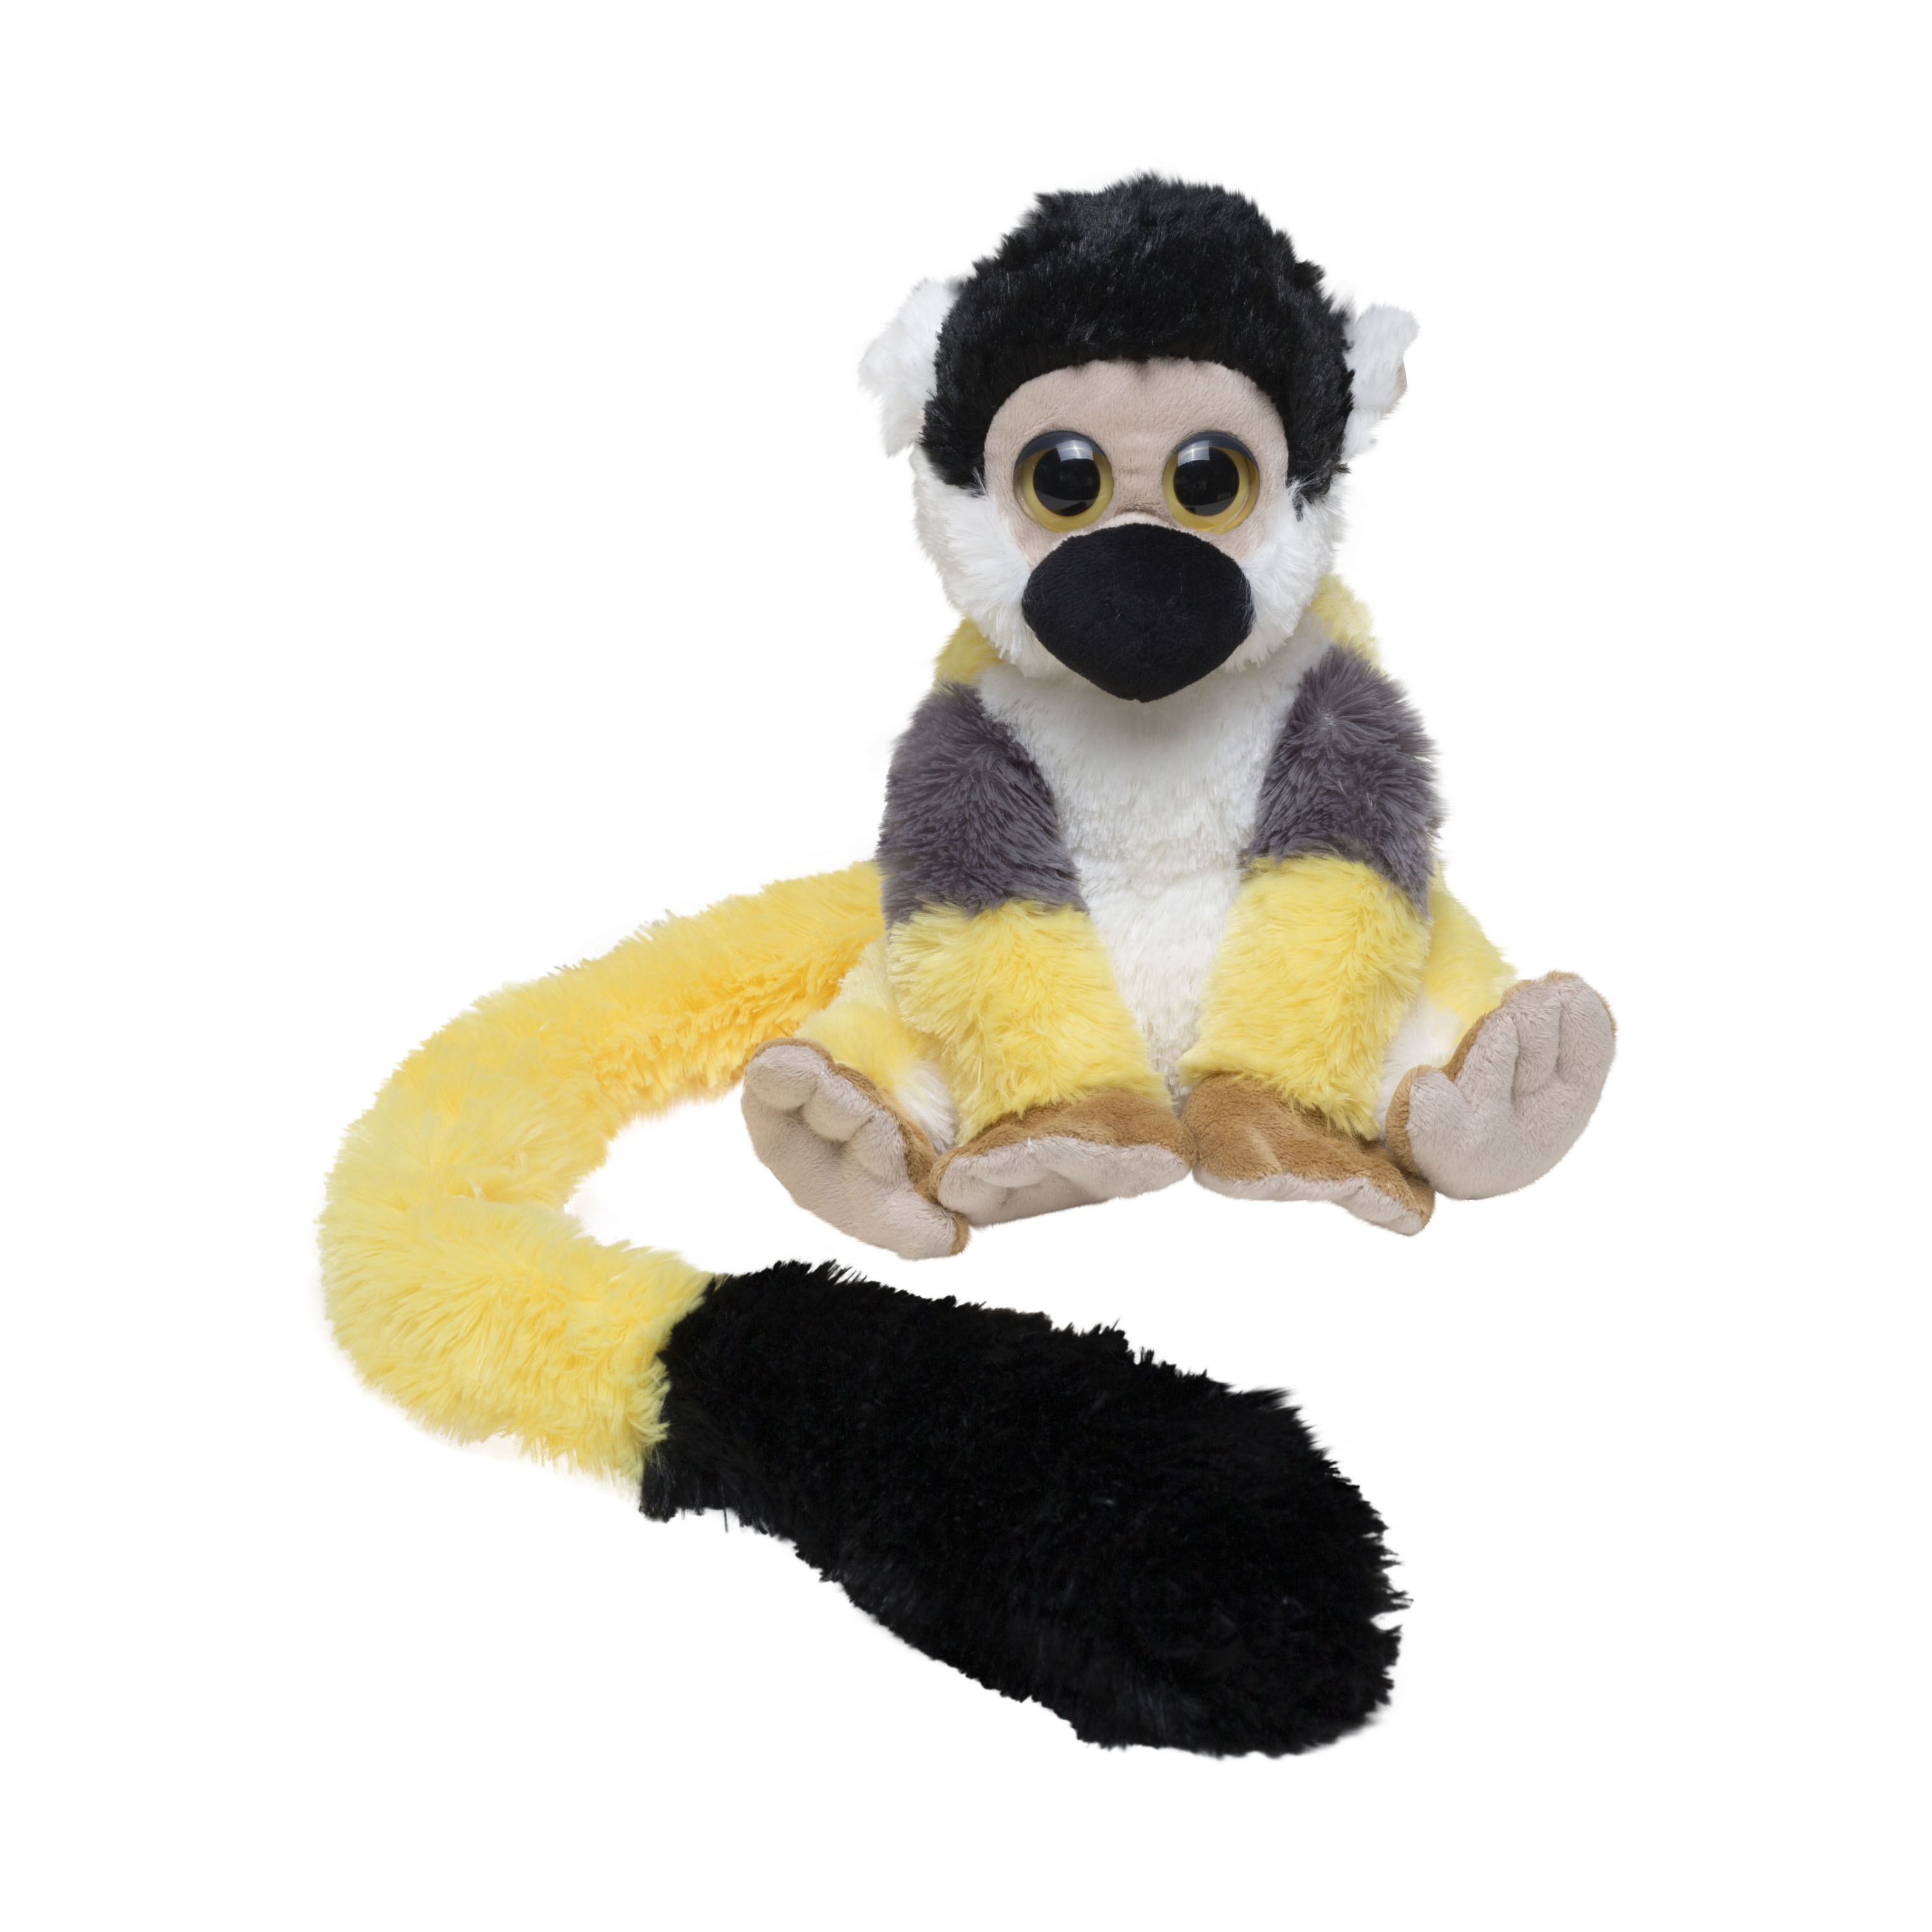 Squirrel monkey soft toy, large